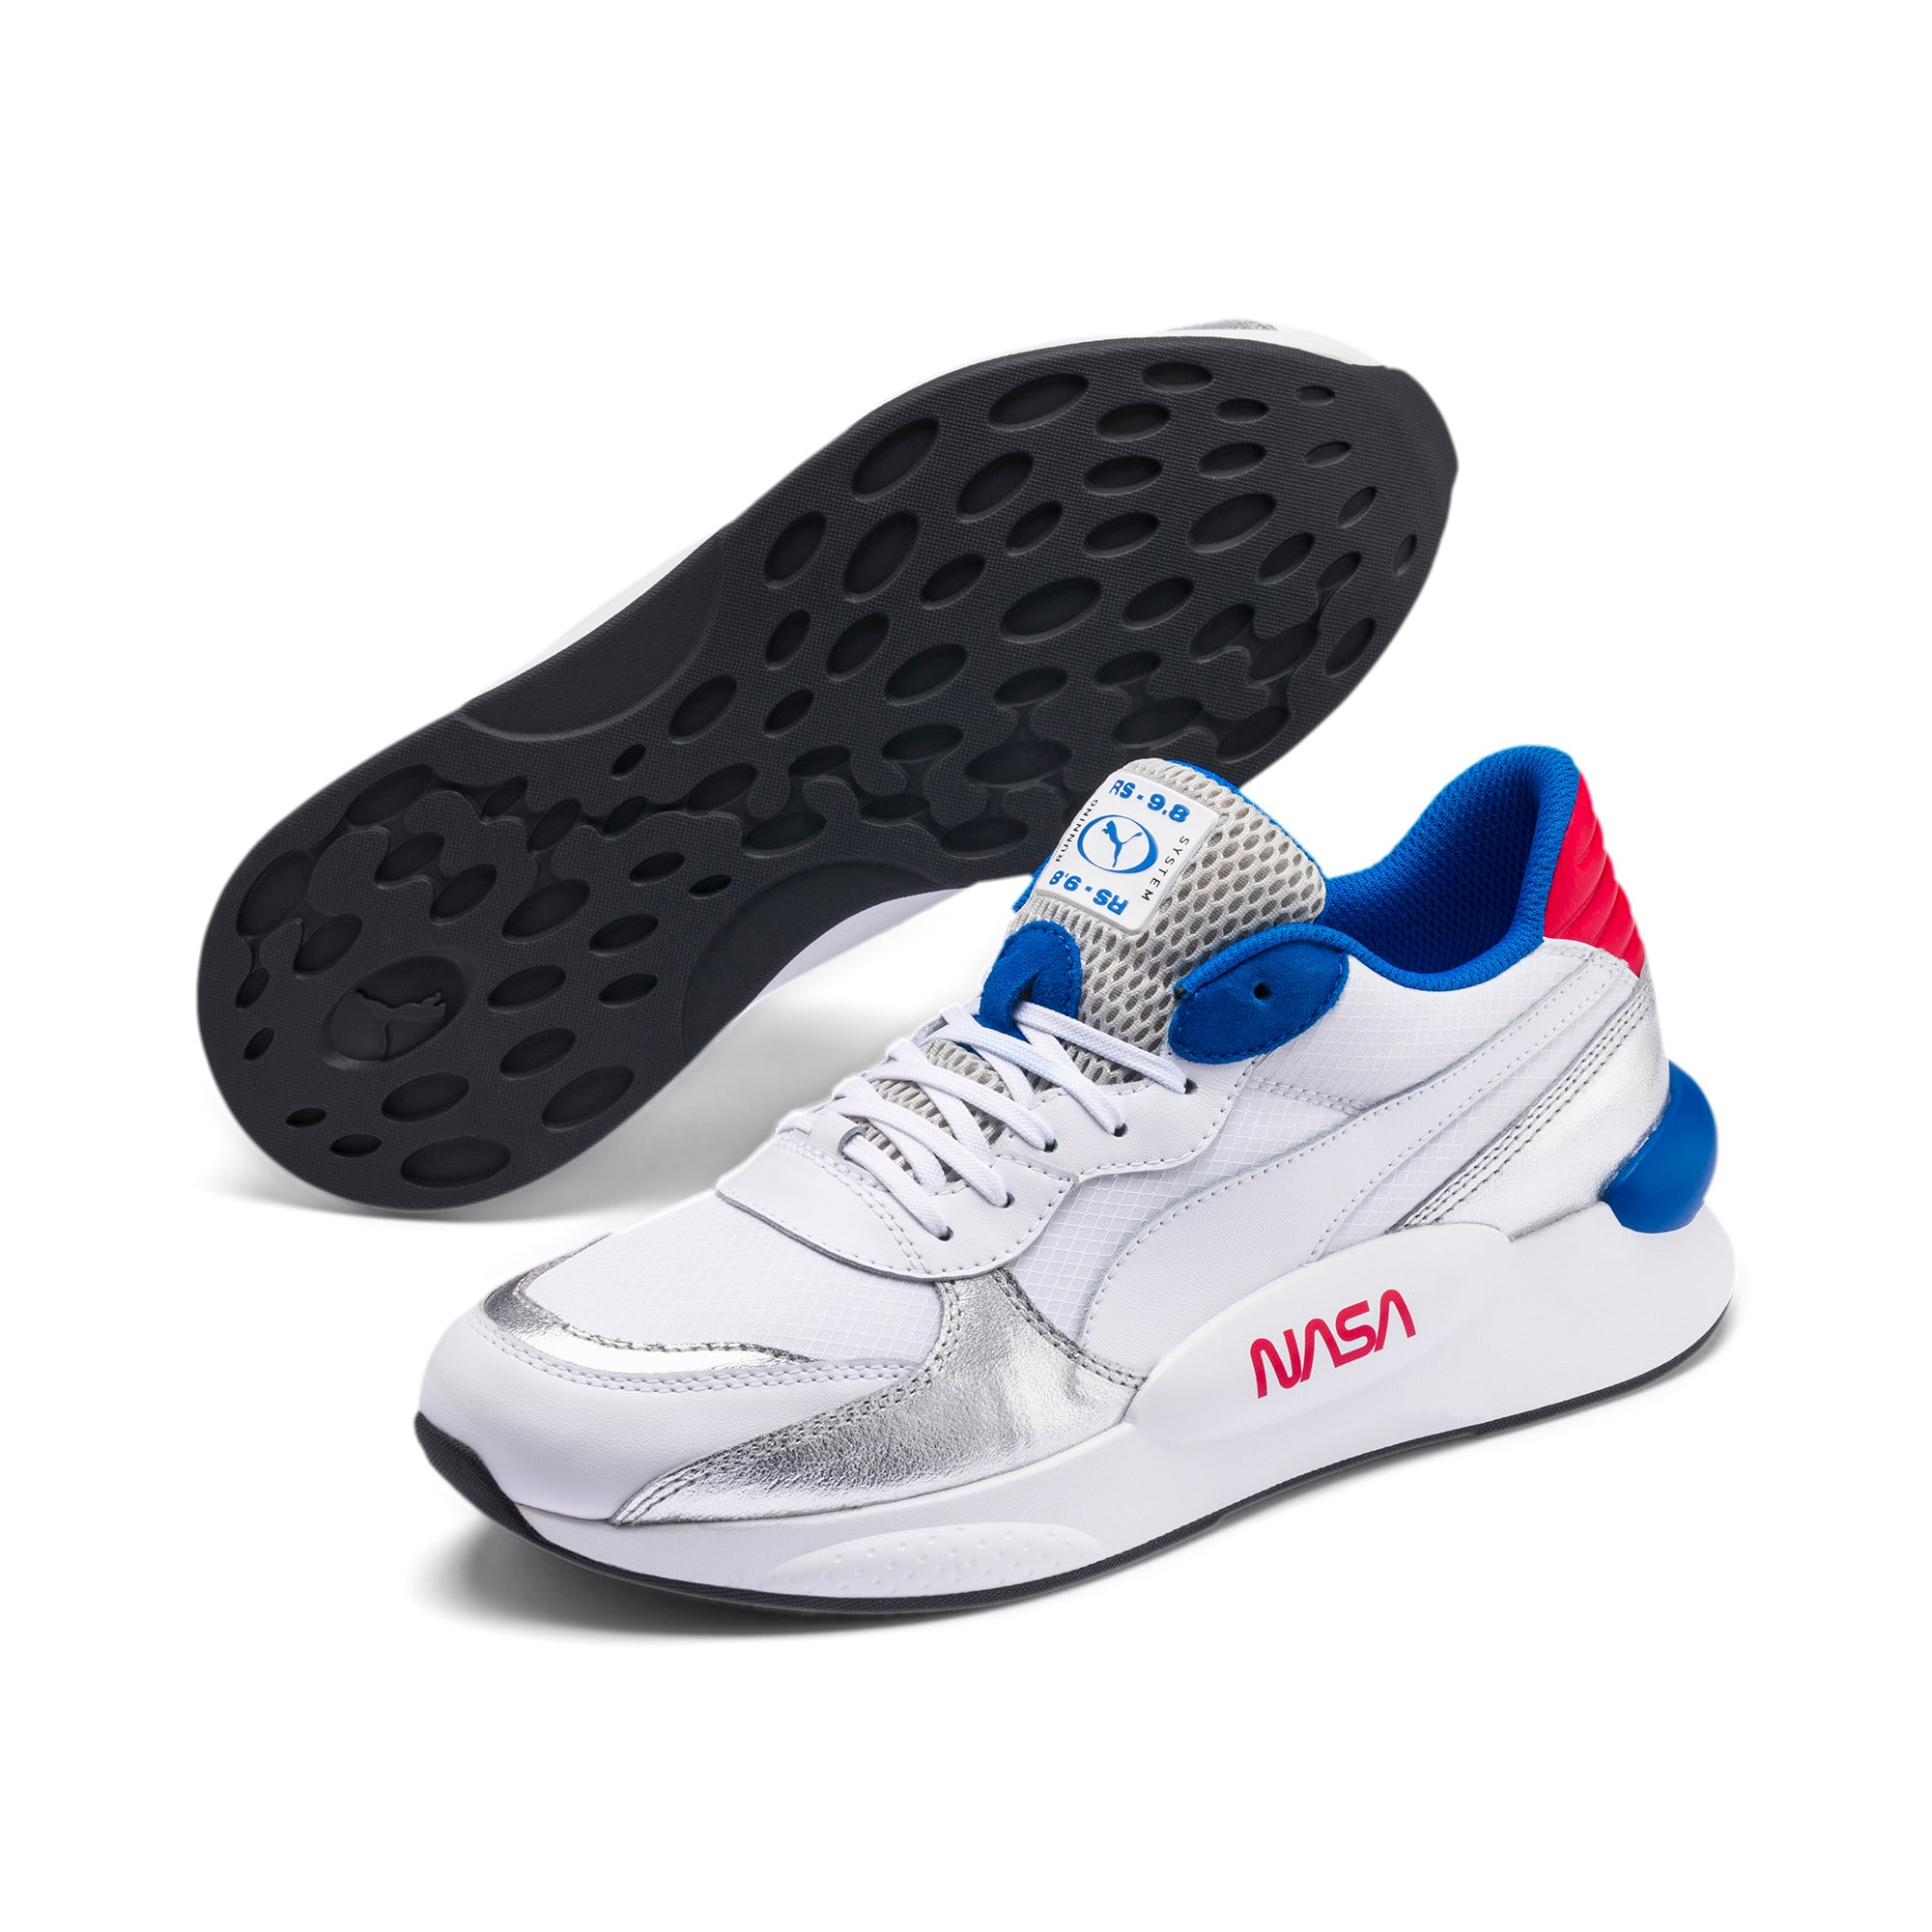 Thumbnail 2 of RS 9.8 Space Explorer Trainers, Puma White-Puma Silver, medium